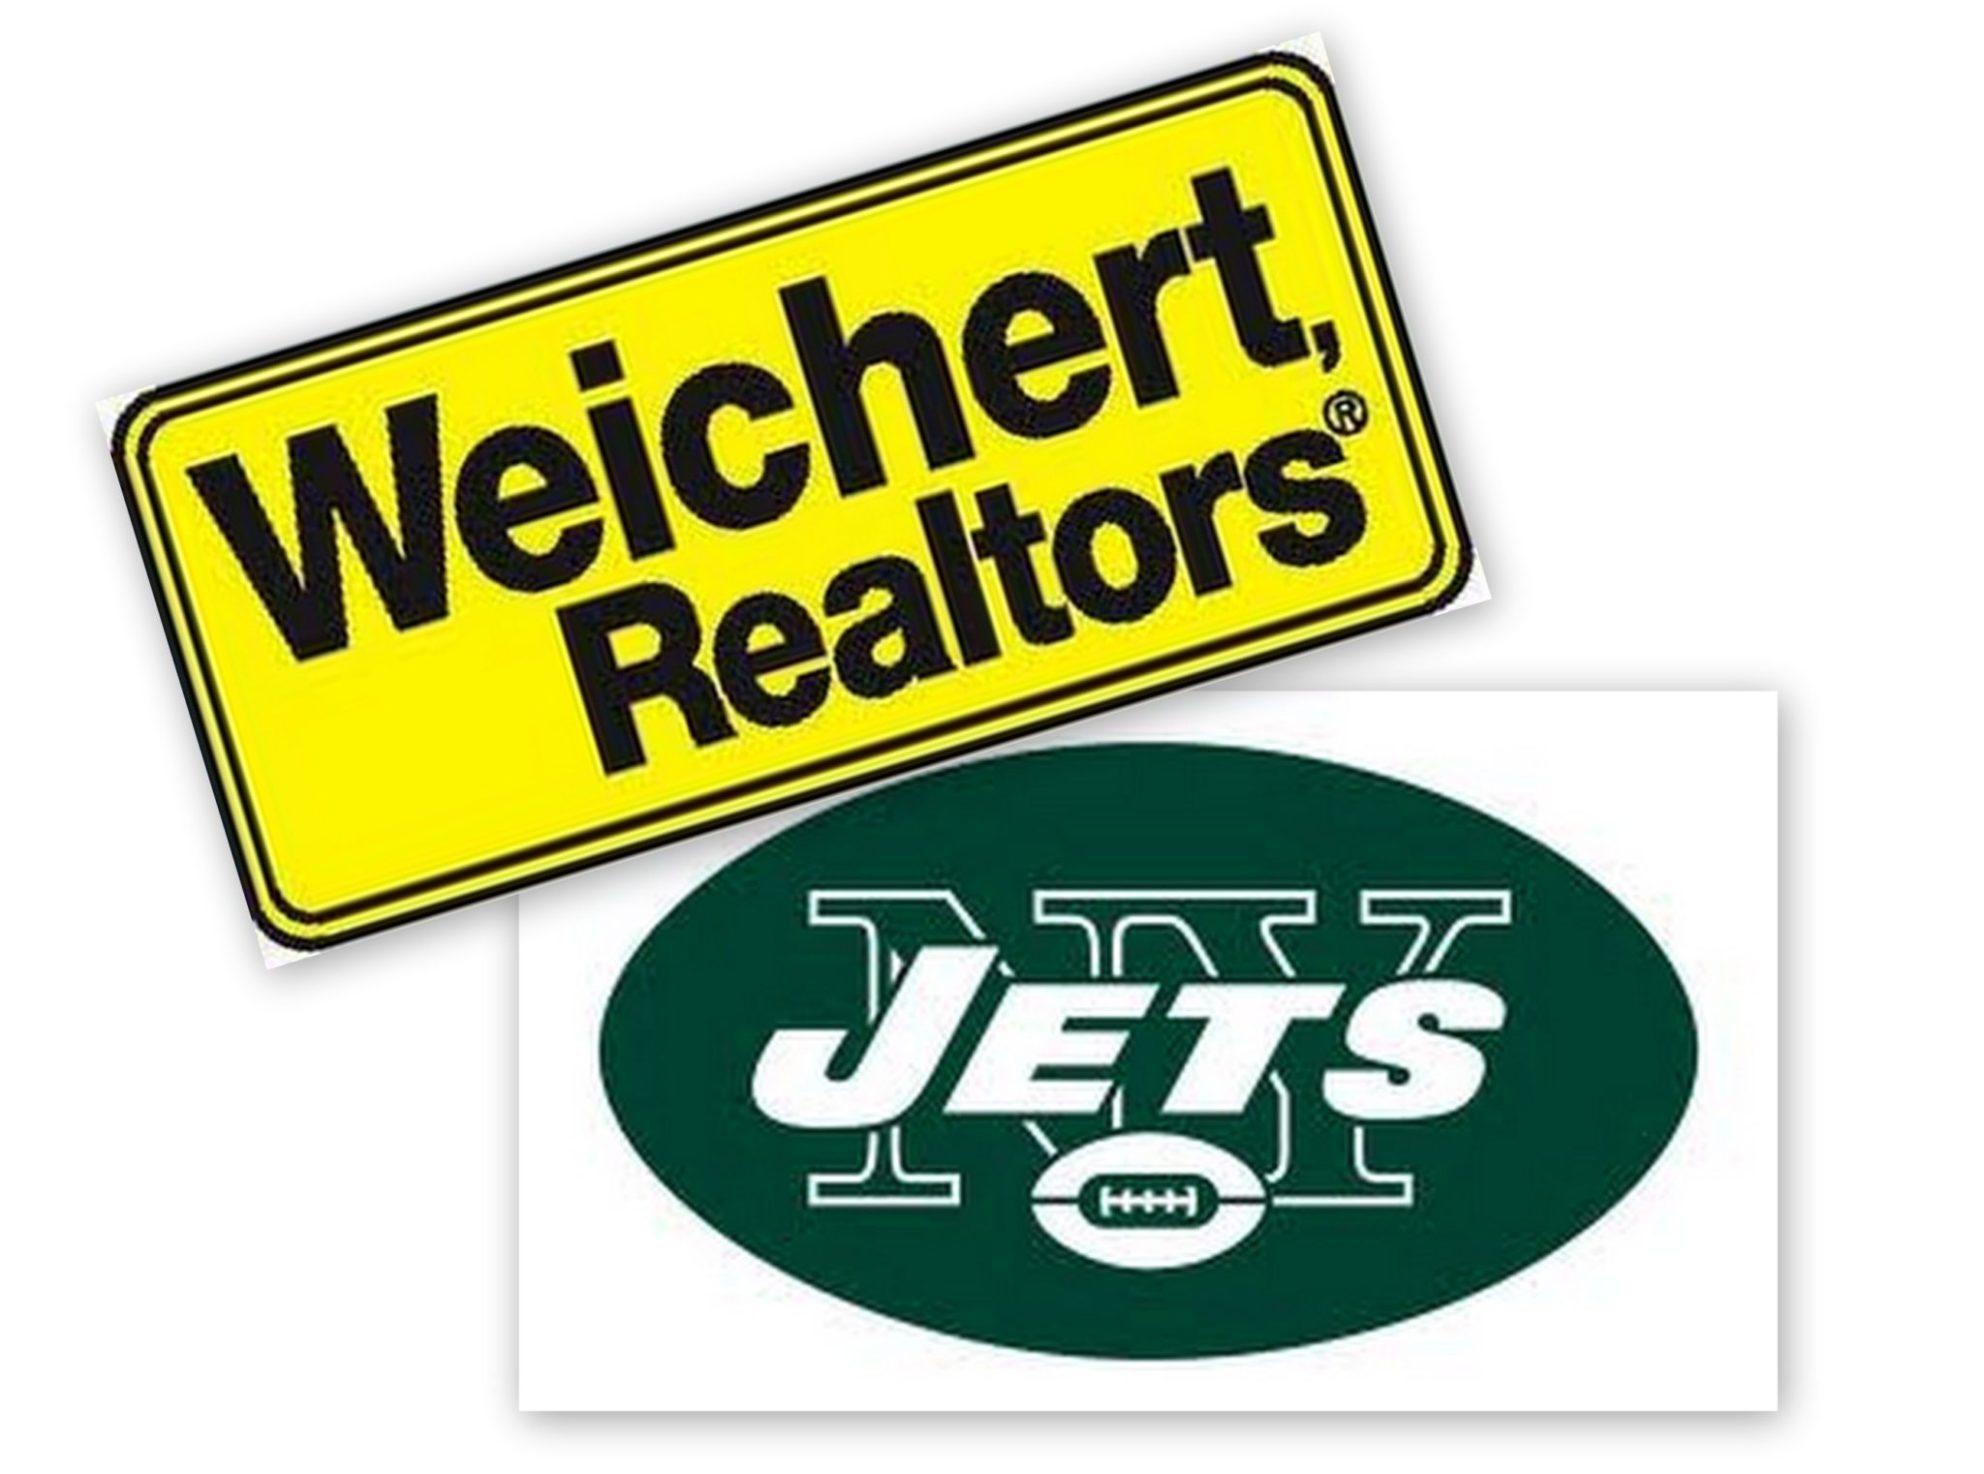 Weichert named official real estate company of the NY Jets